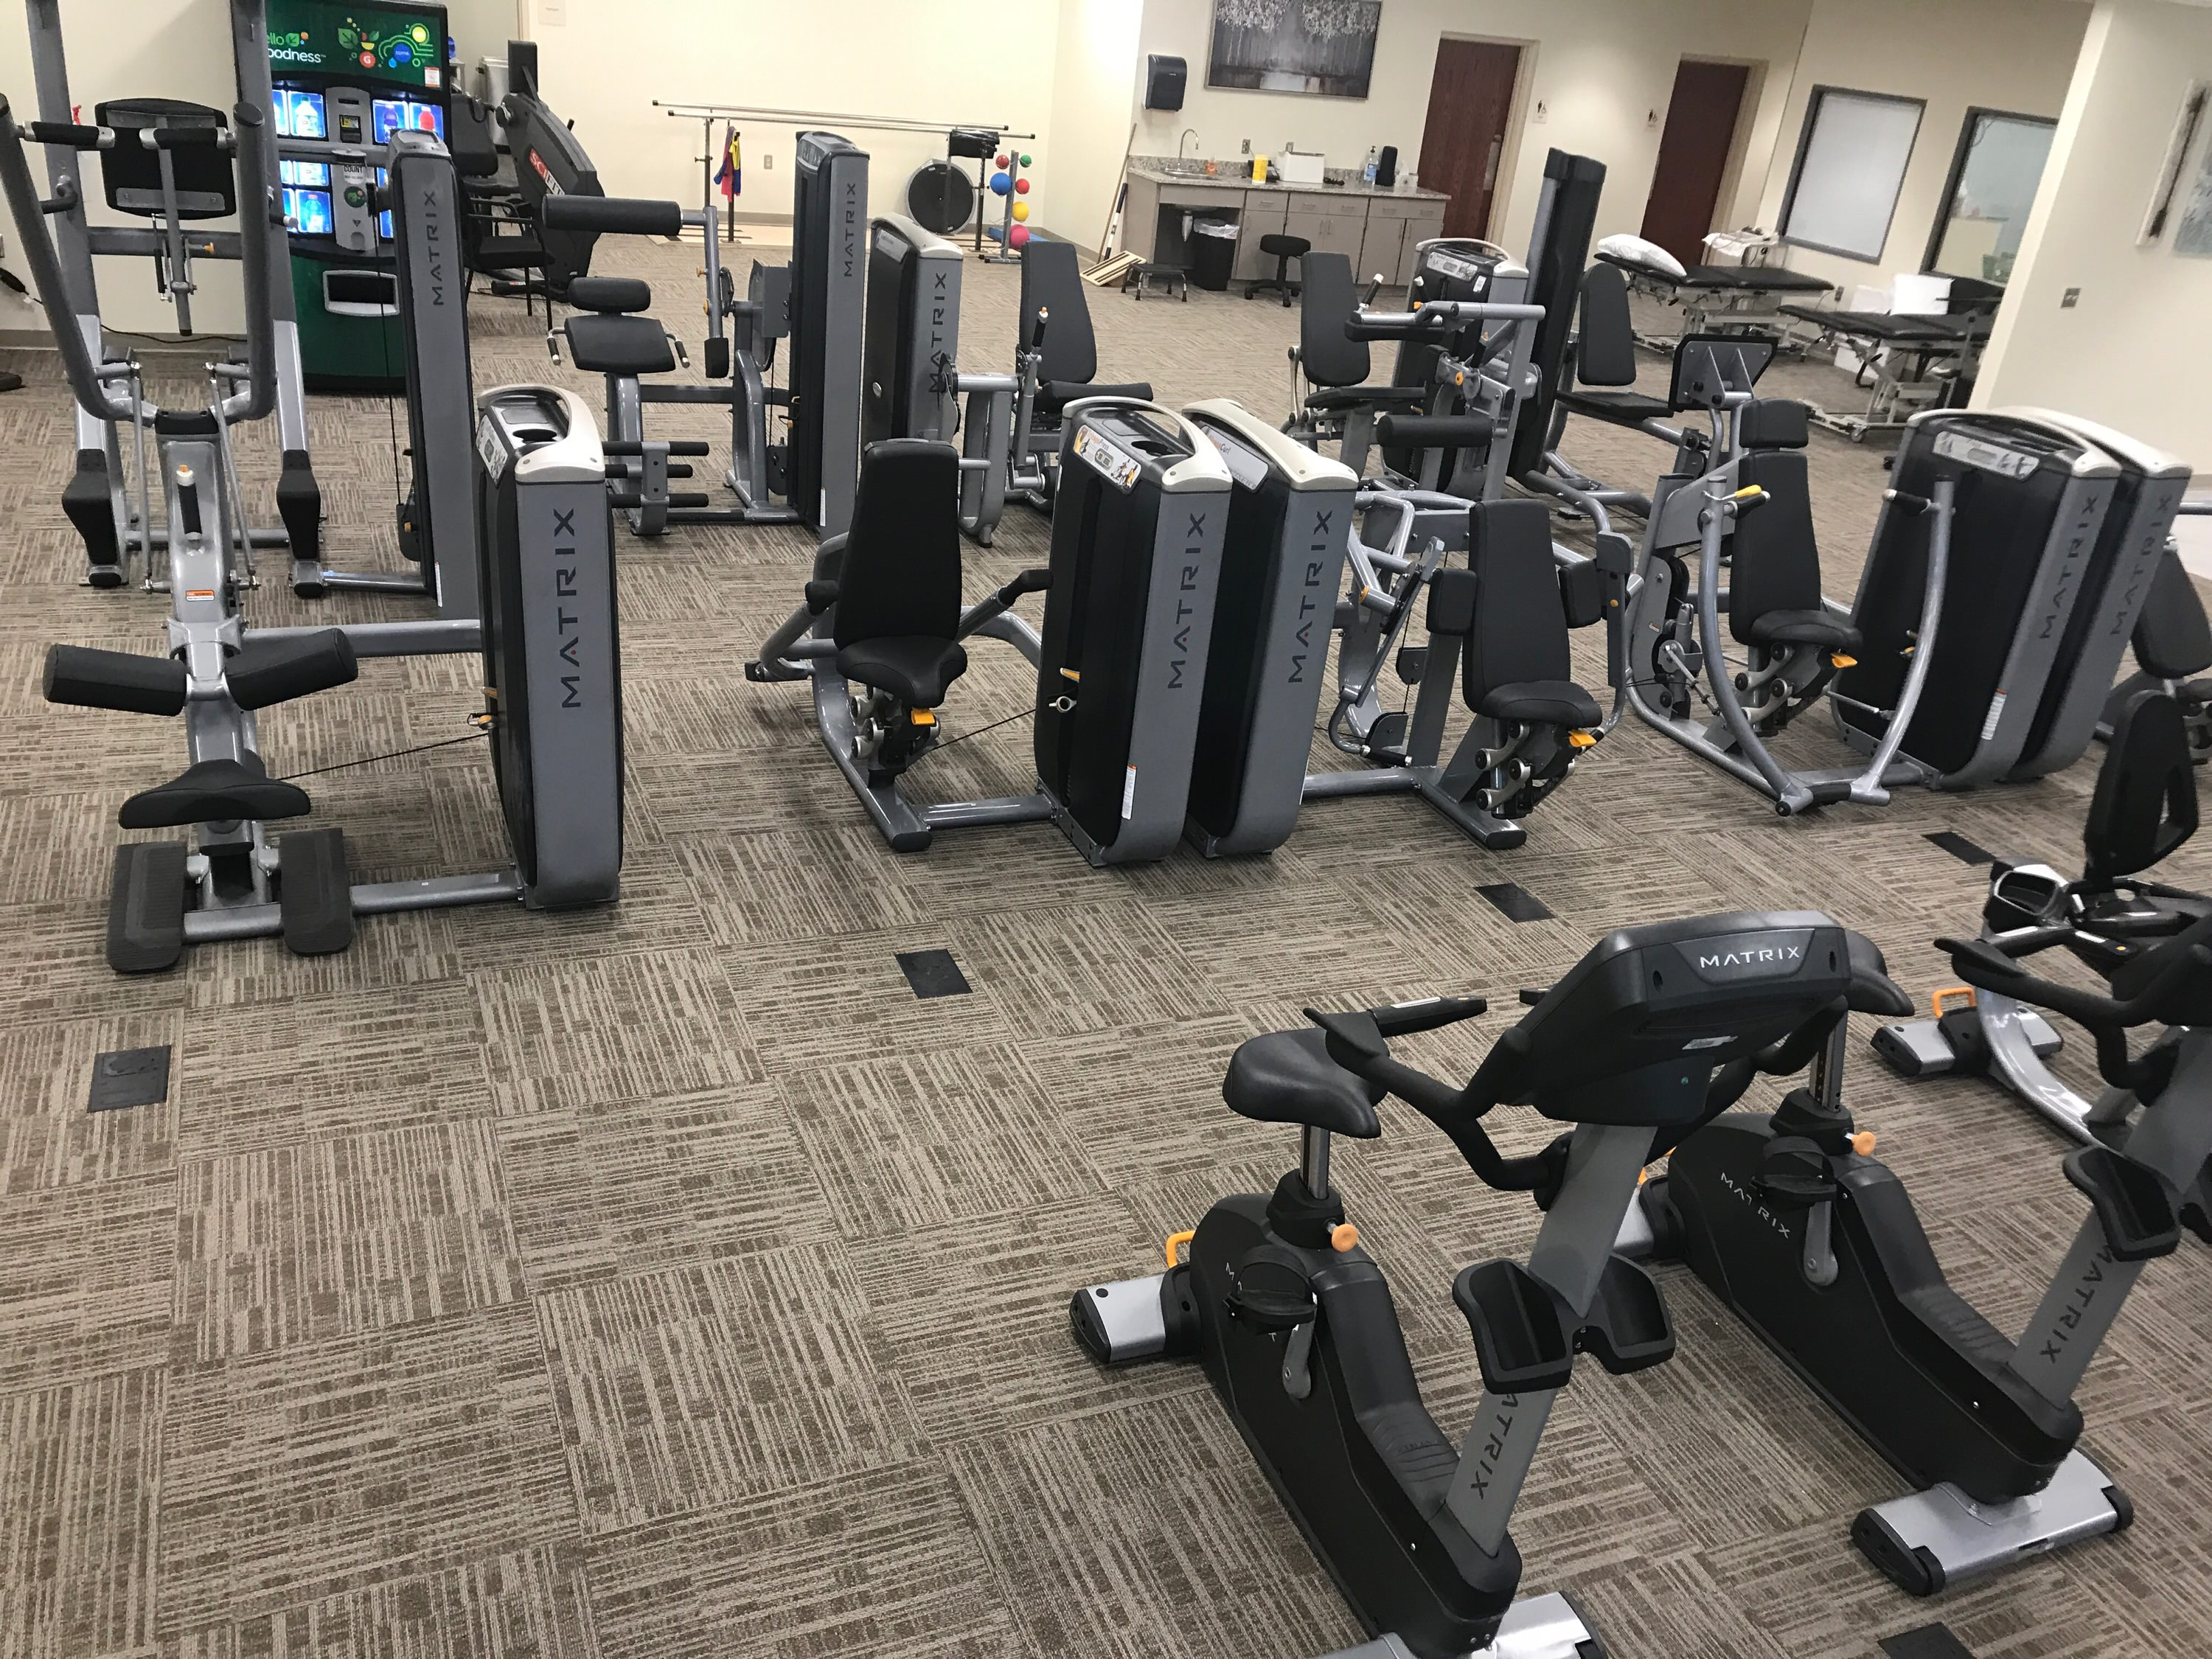 Inwood fitness center fitness center rankin physical therapy